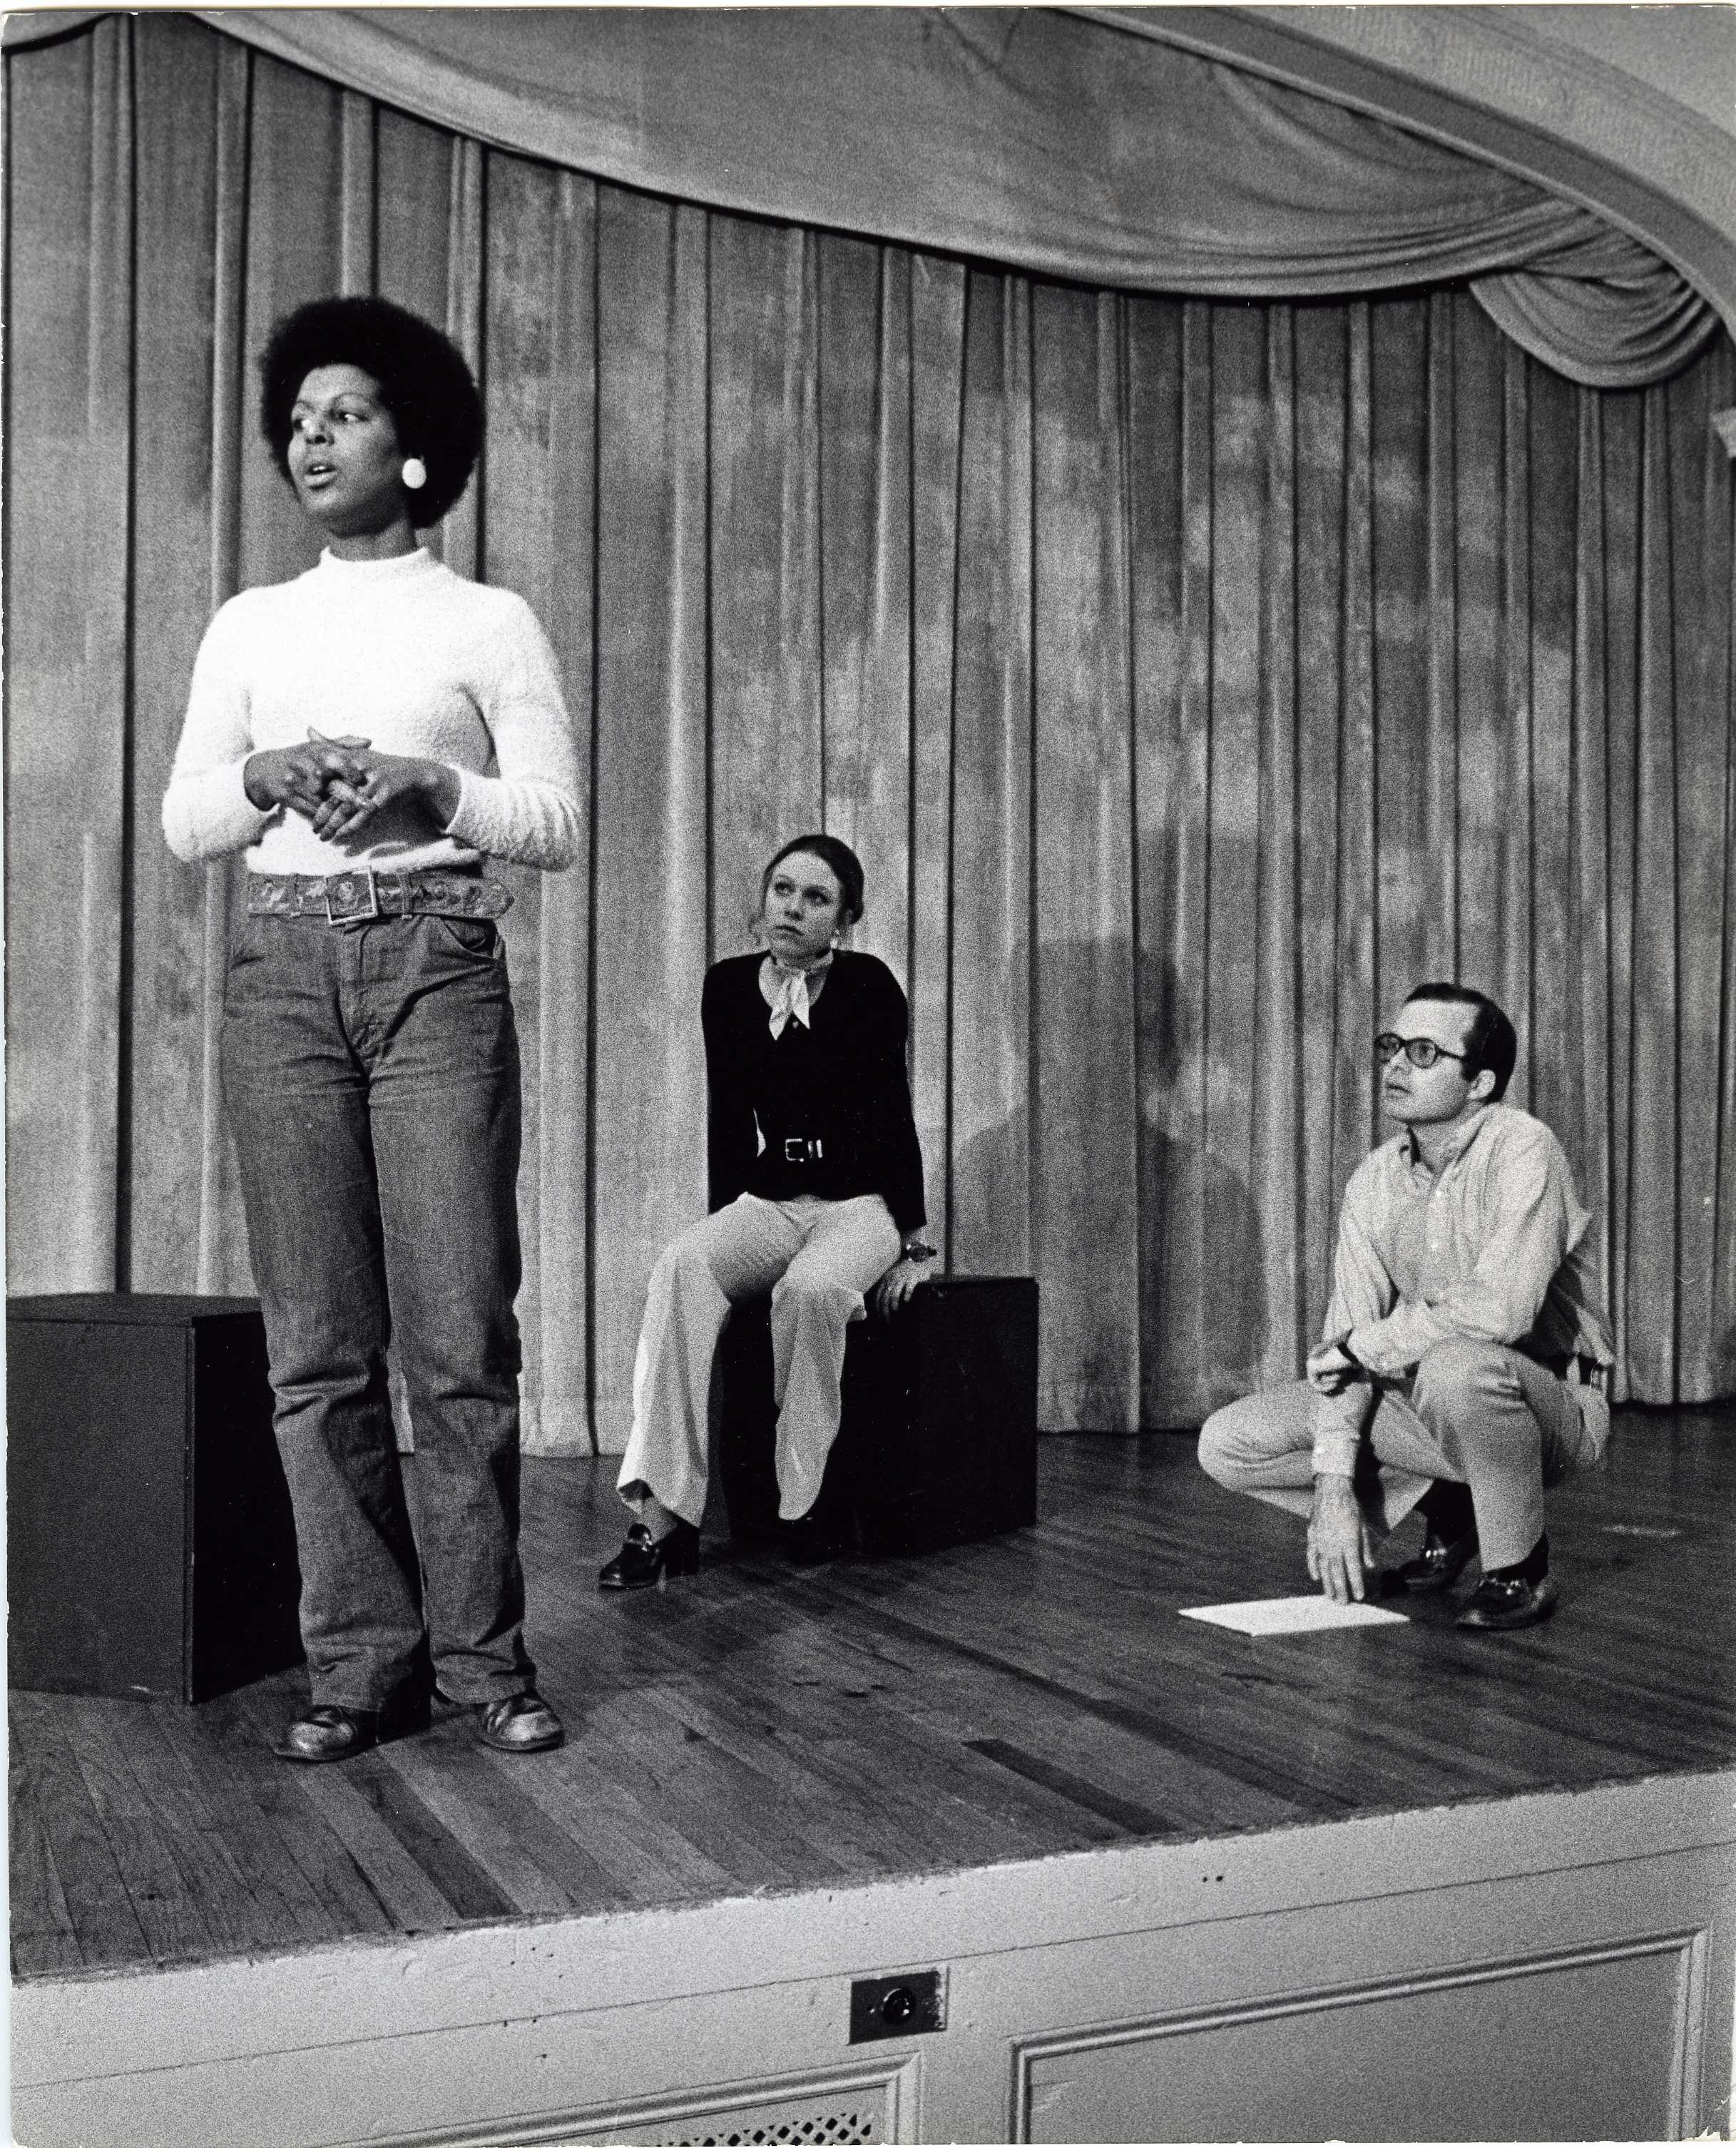 Bill Bordeau crouching on stage in Great Hall directing two female actors, 1972